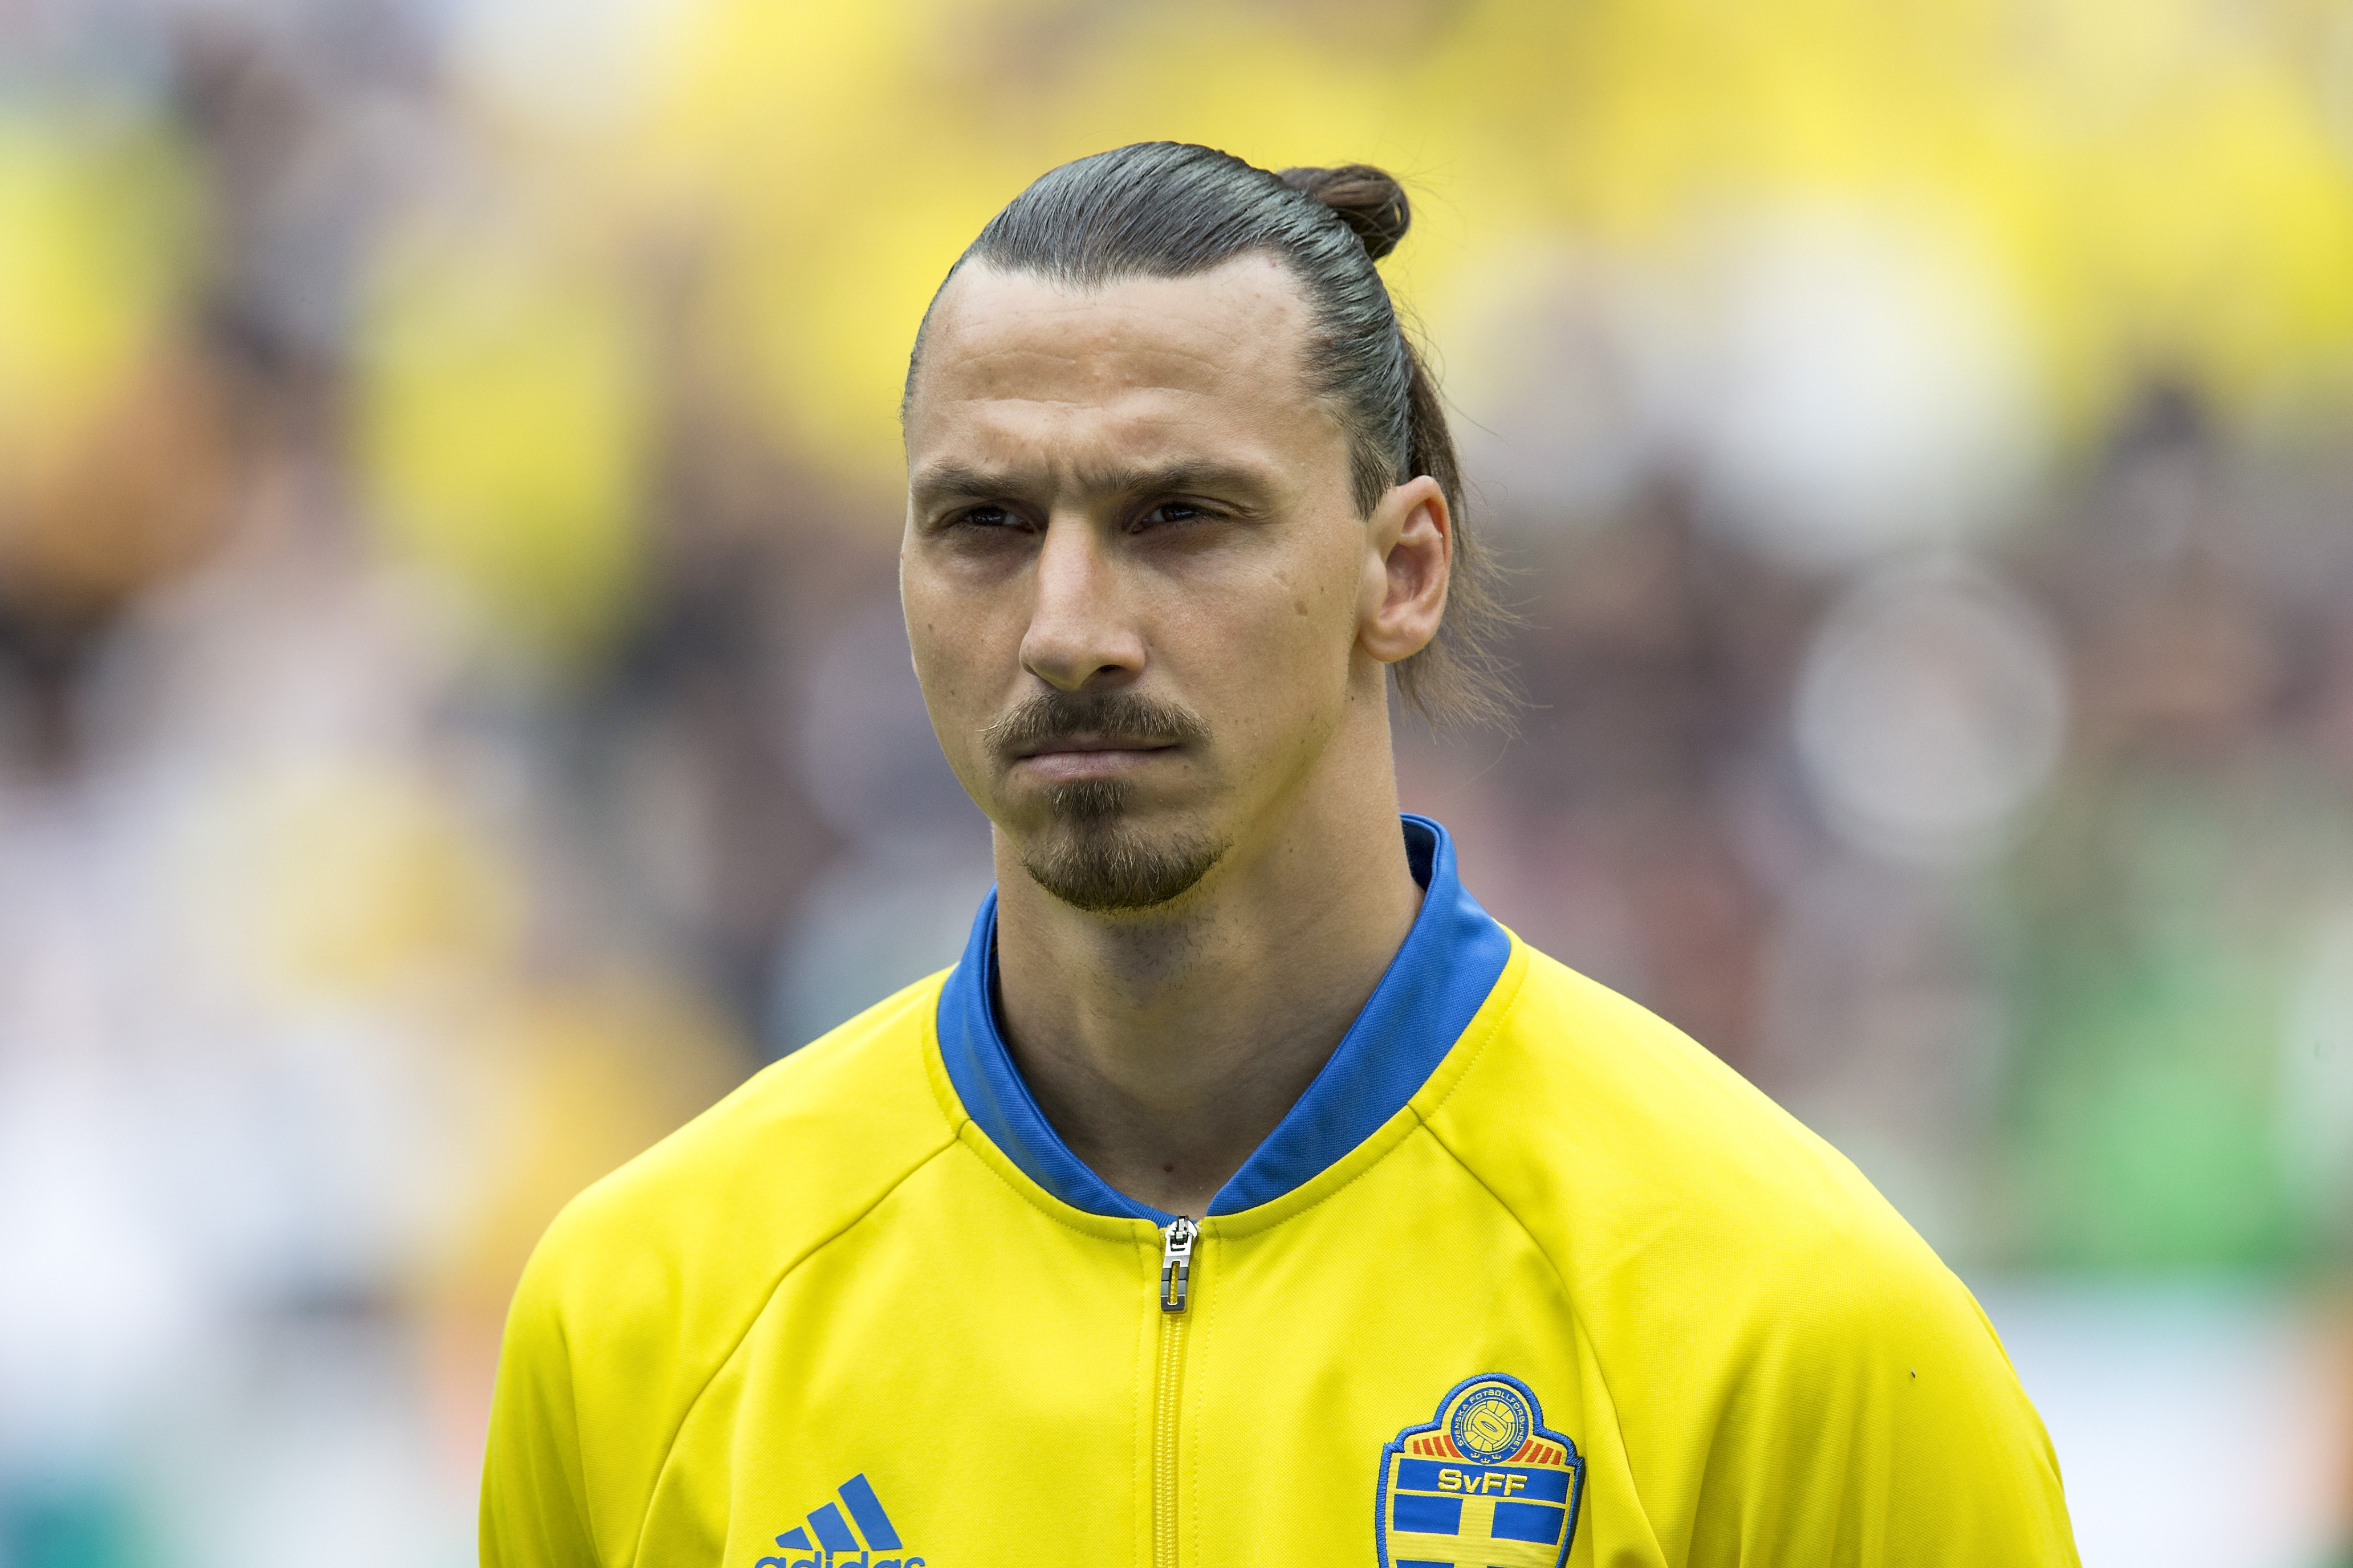 Arsenal legend wishes Zlatan Ibrahimovic good luck at Manchester United